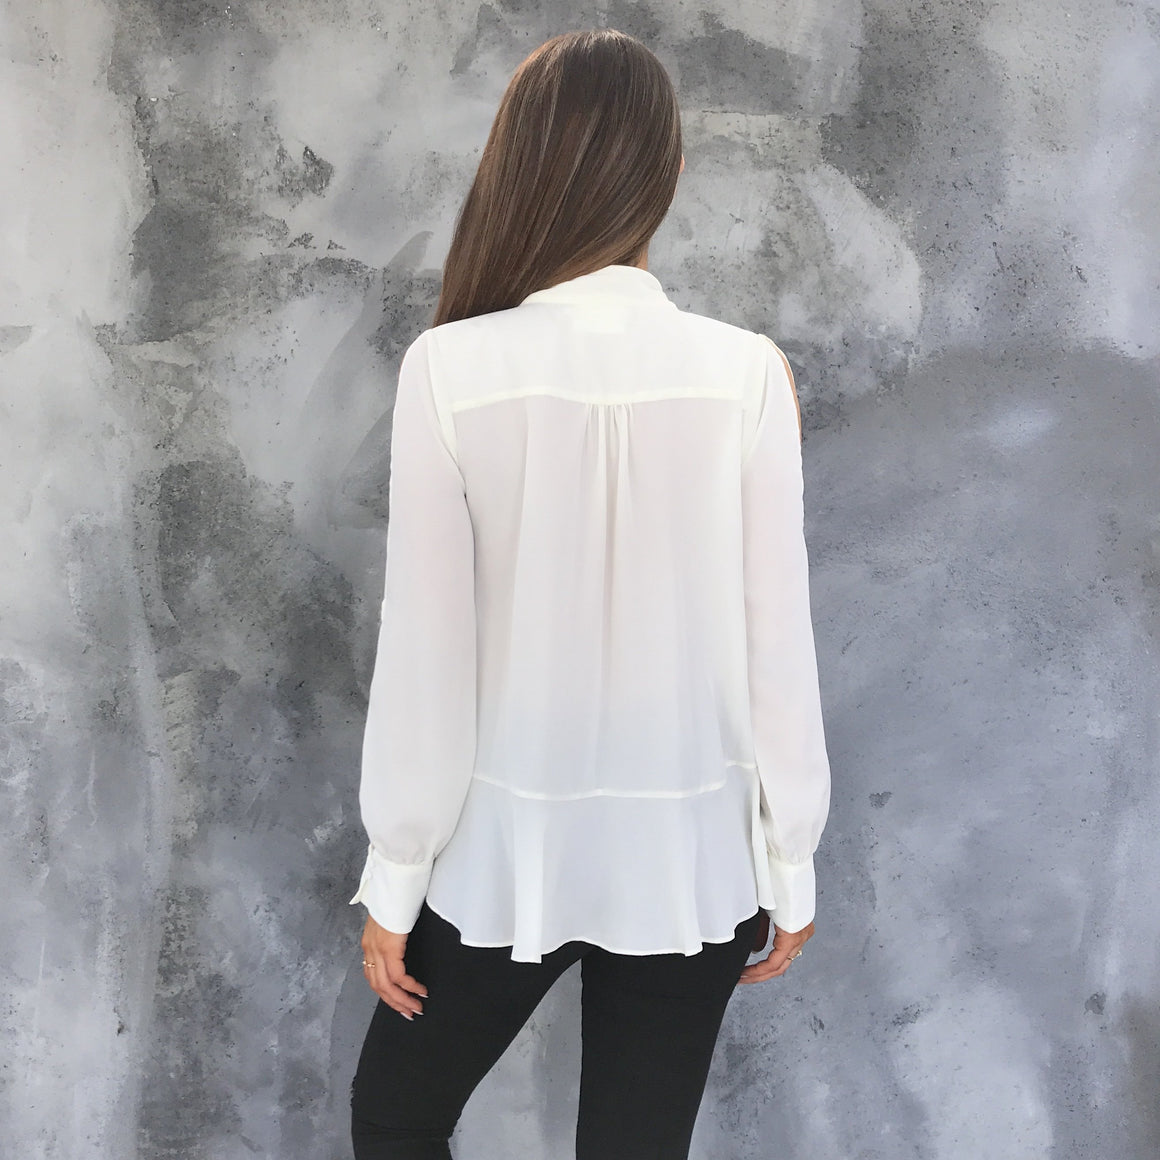 Tie The Knot Ivory Blouse - Dainty Hooligan